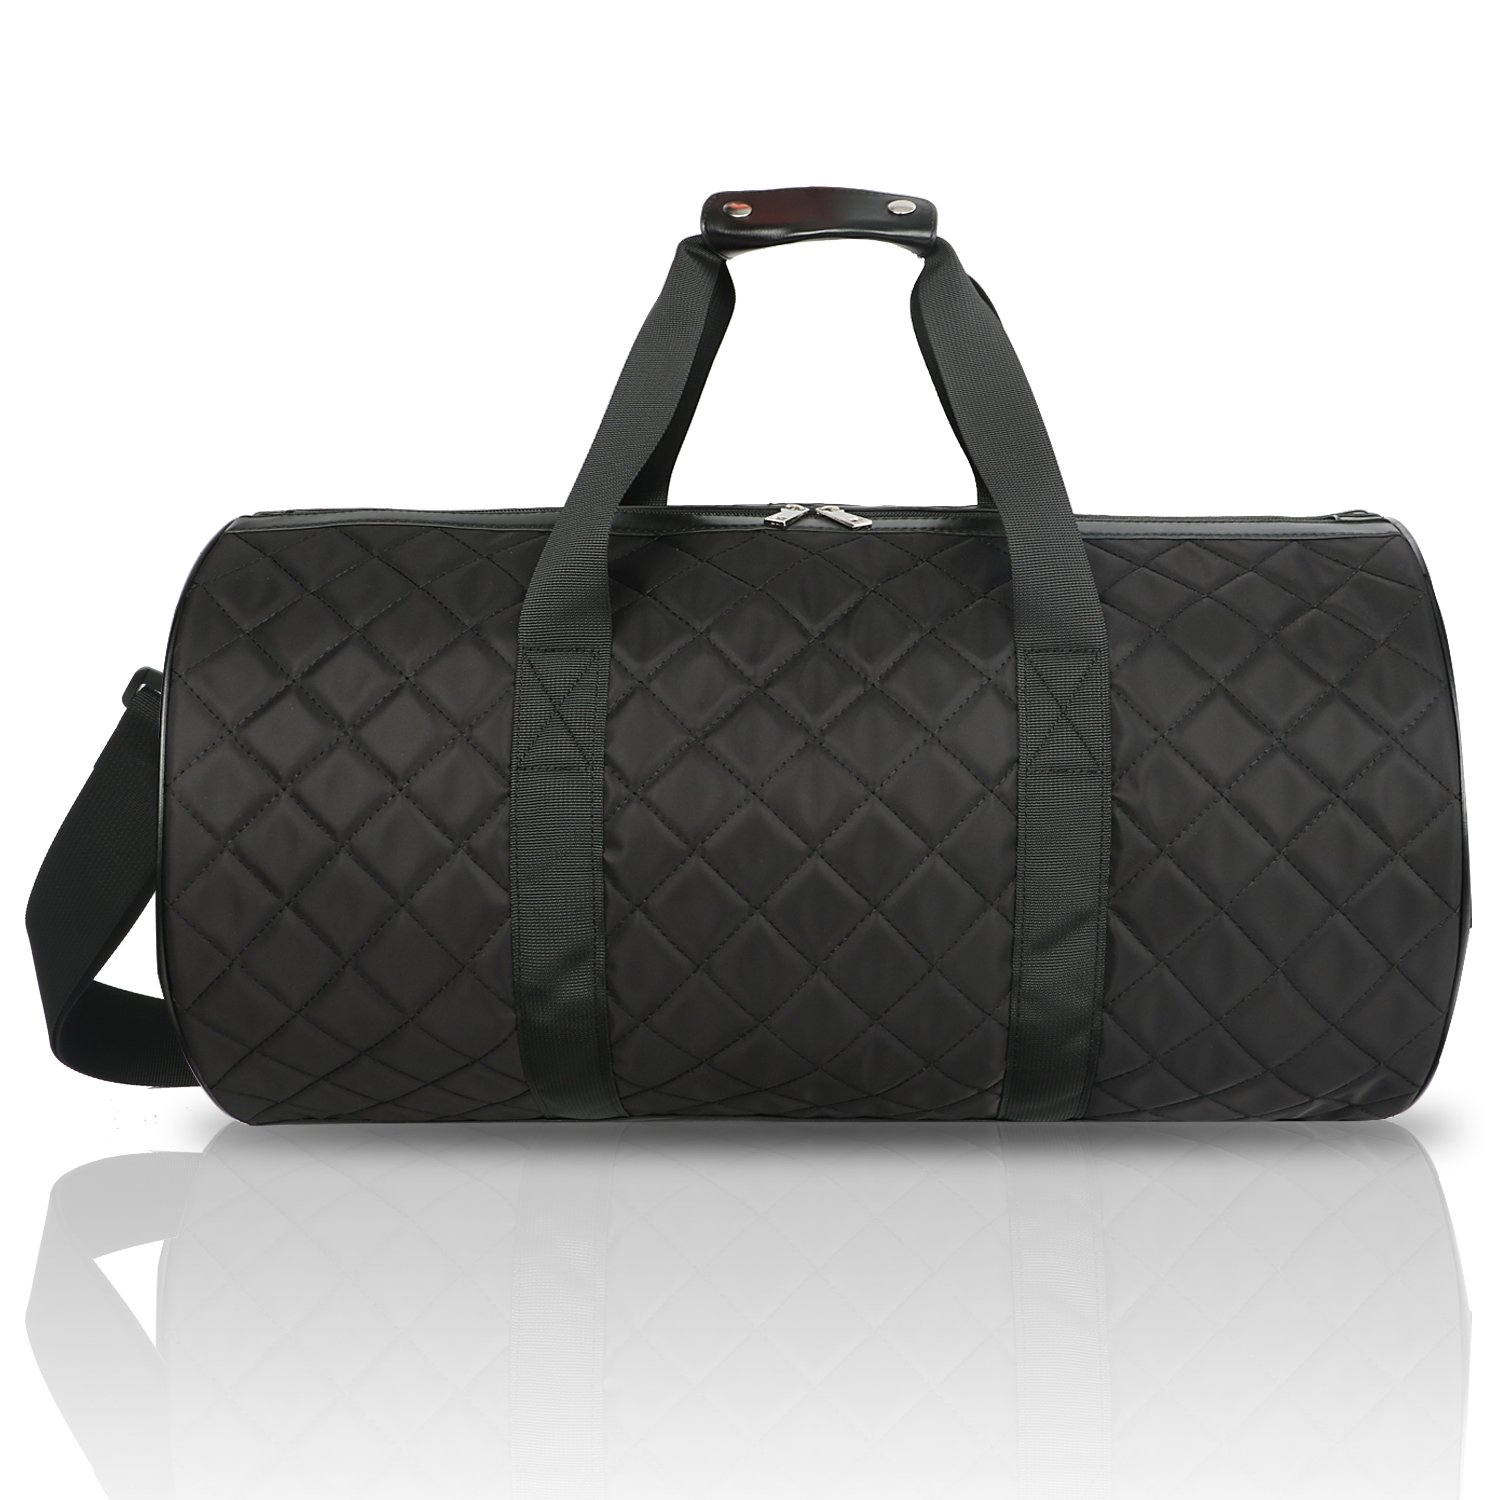 FITMYFAVO 20'' Duffle Yoga Dance Gym Bag Weekender Grid Pattern Overnight Carry On (Black)